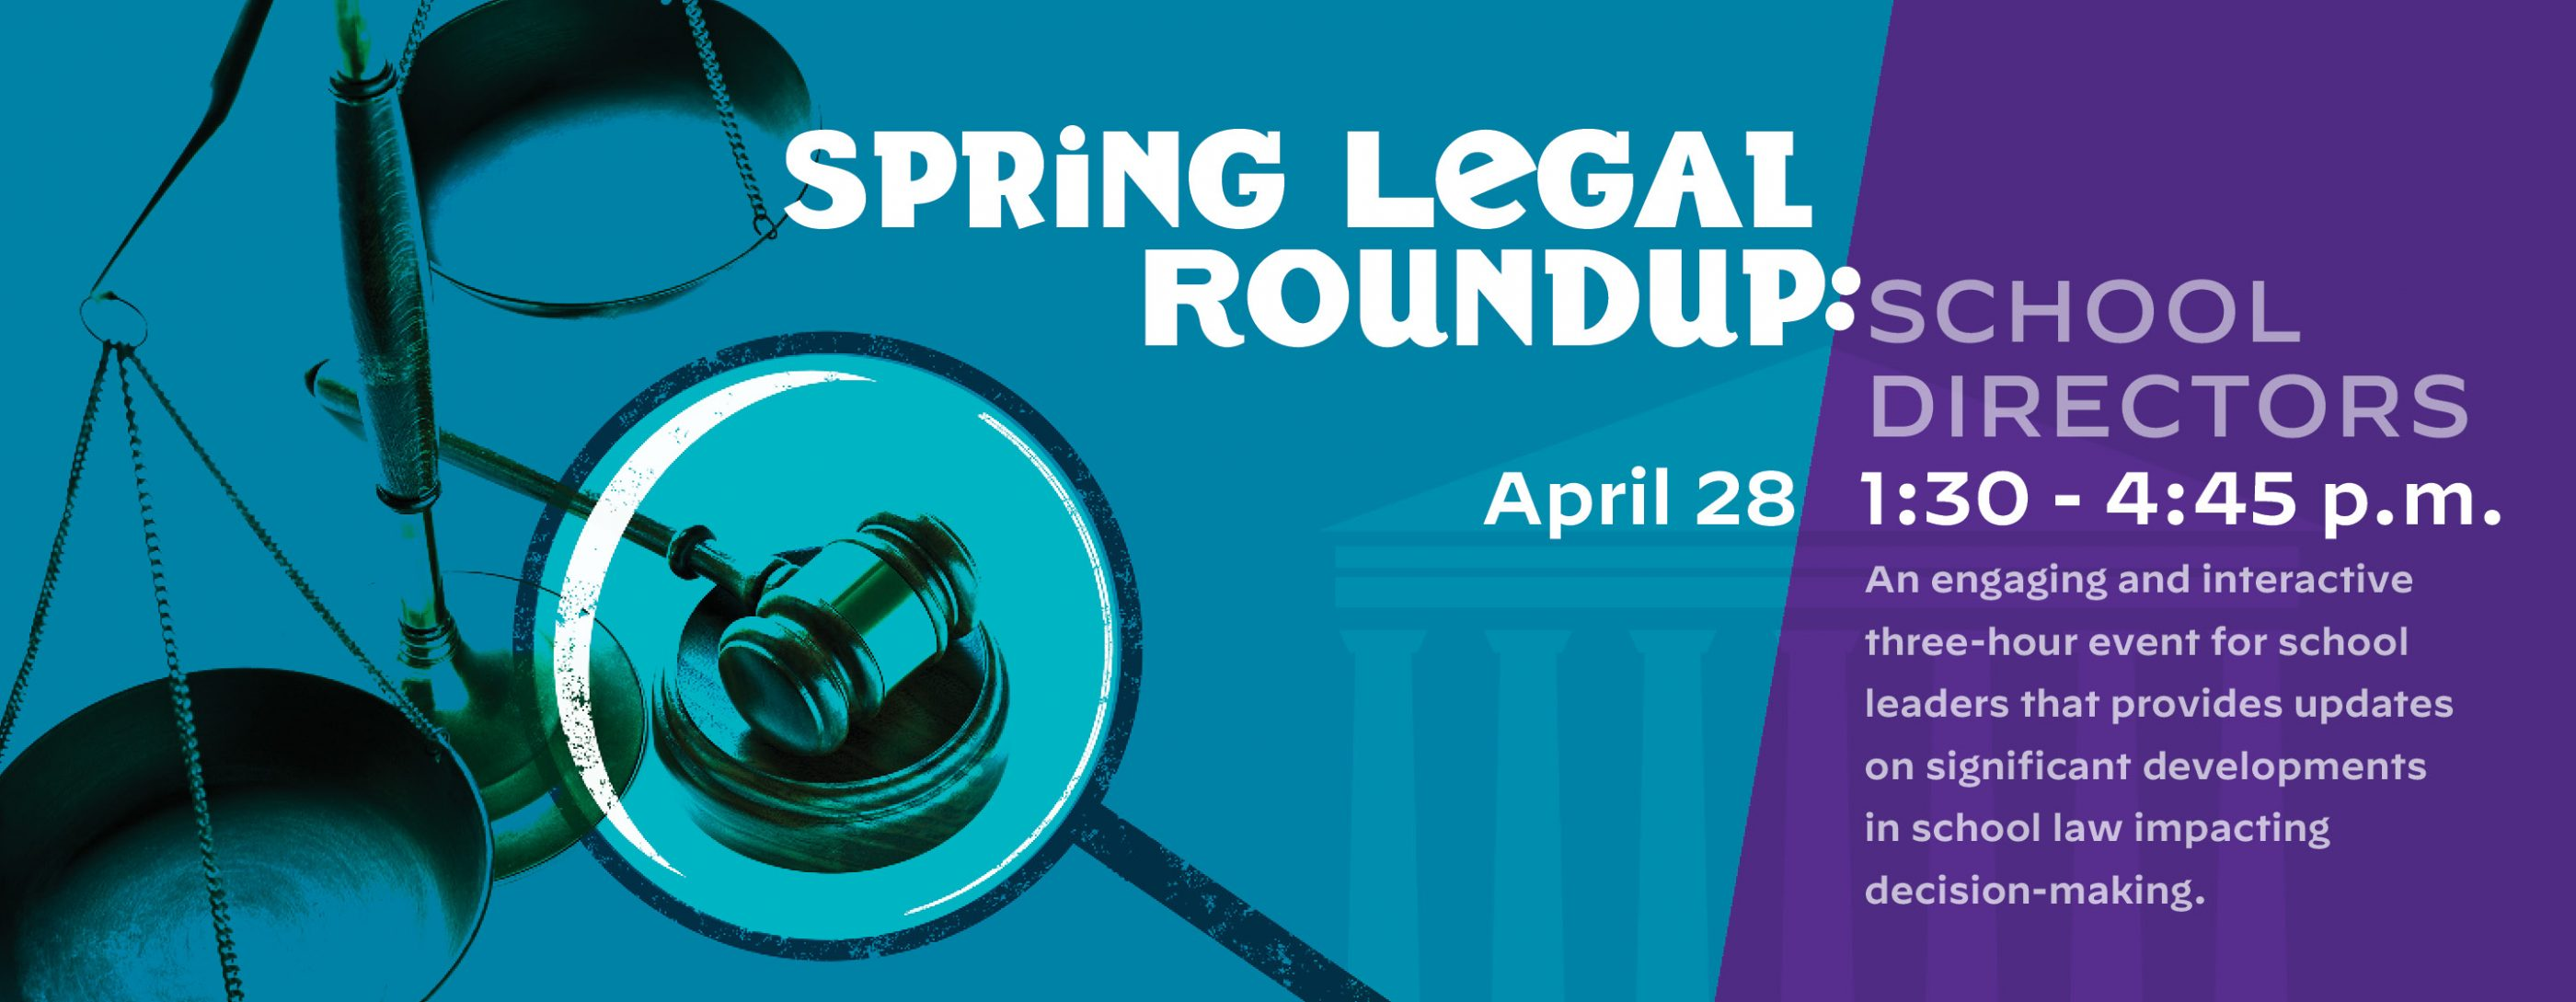 Register for Spring Legal Roundup: School Directors